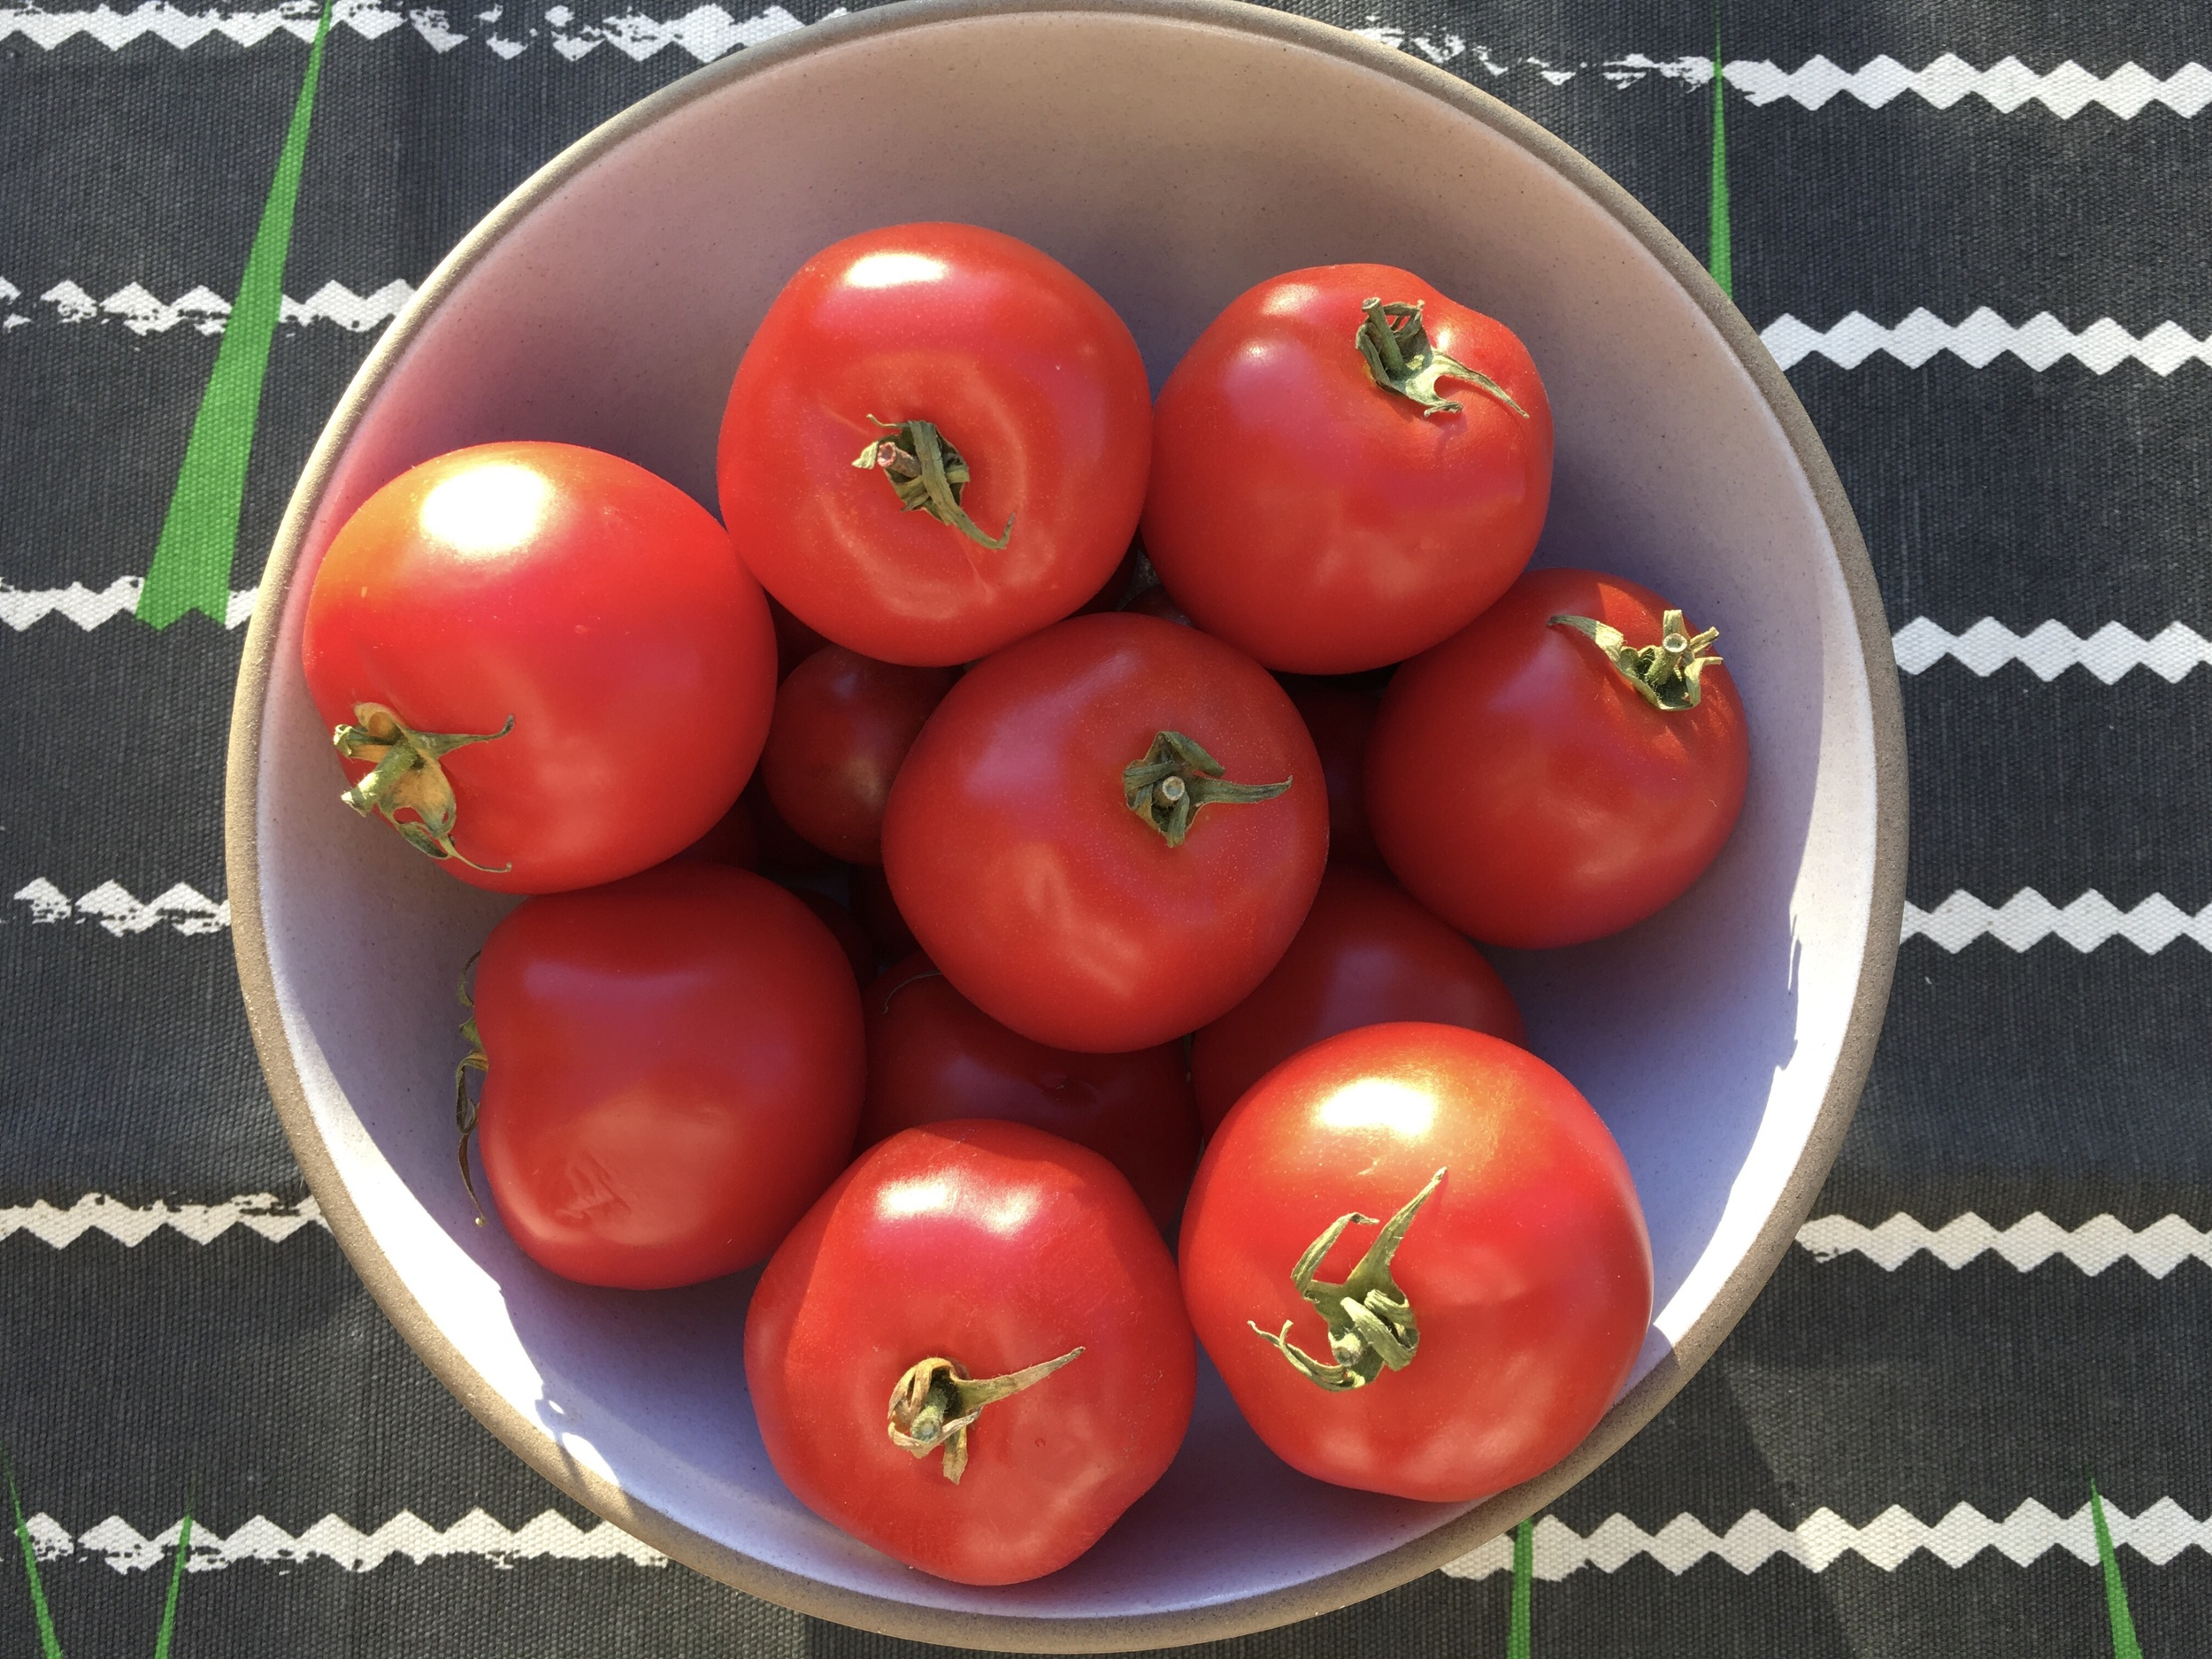 Early Girl Tomatoes from Dirty Girl Produce